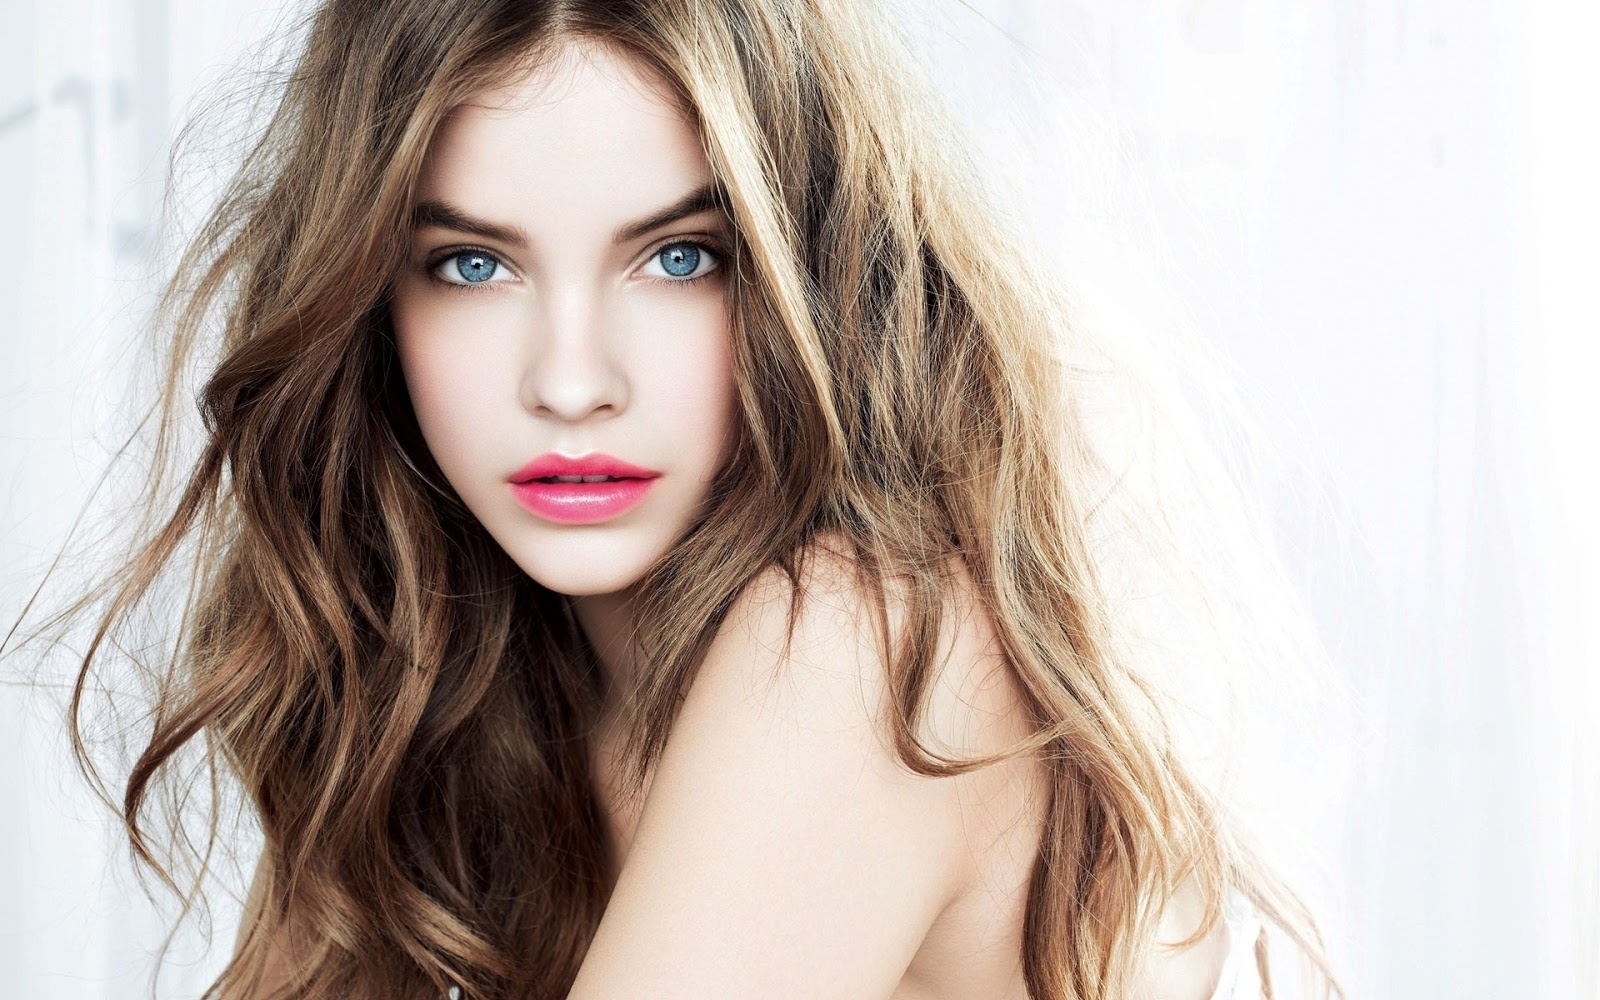 barbara palvin beautiful wallpapers - Barbara Palvin Beautiful 2048x1536 HD Free Wallpapers